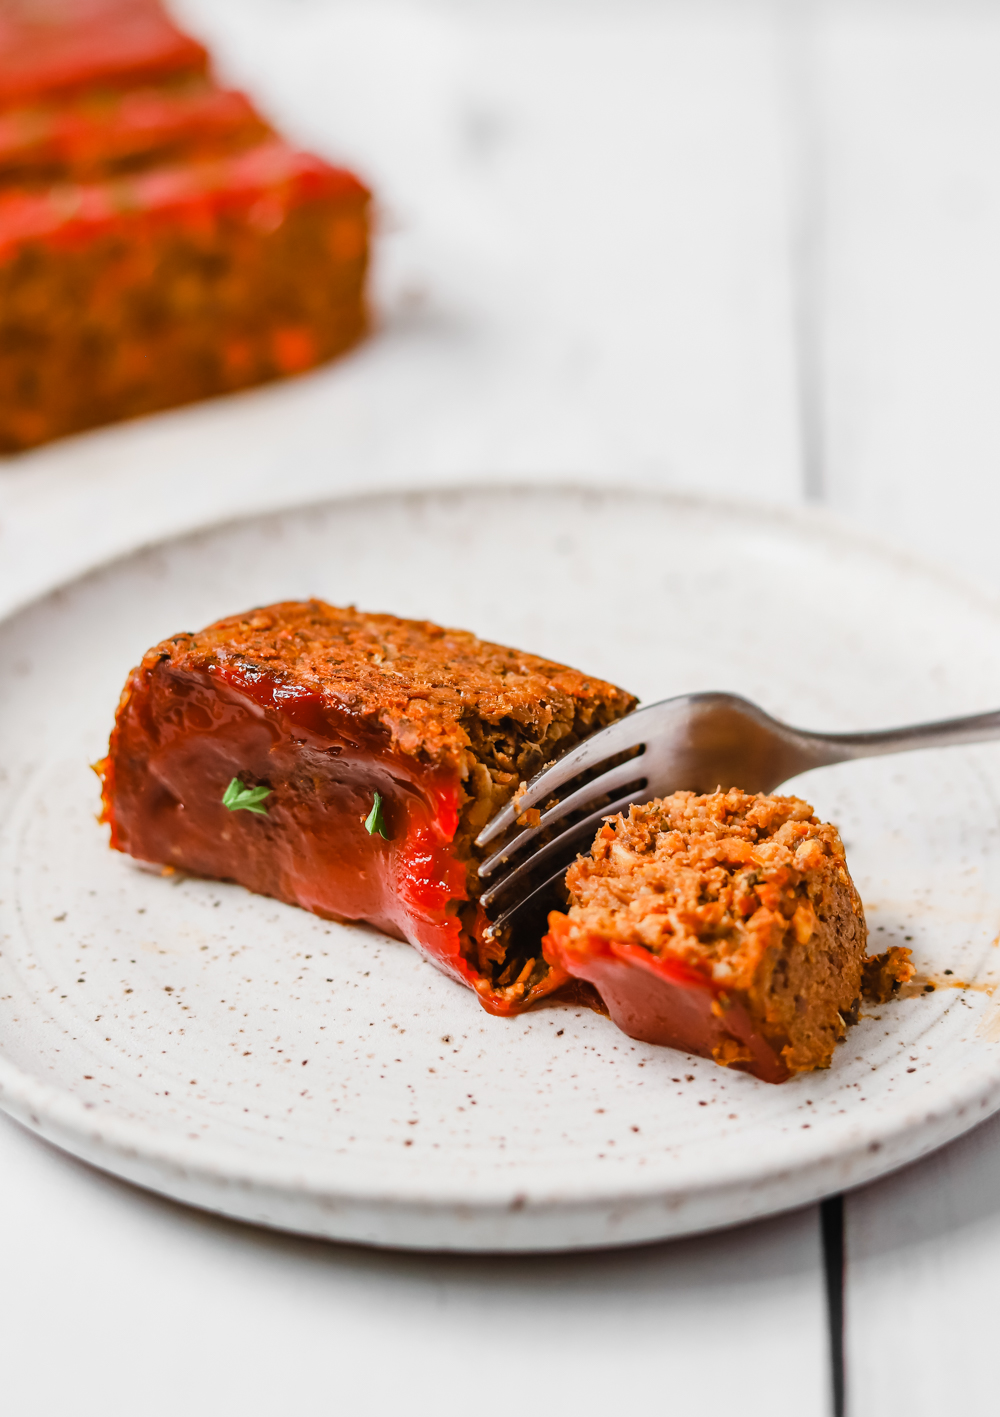 A piece of vegan lentil loaf being cut with a fork.